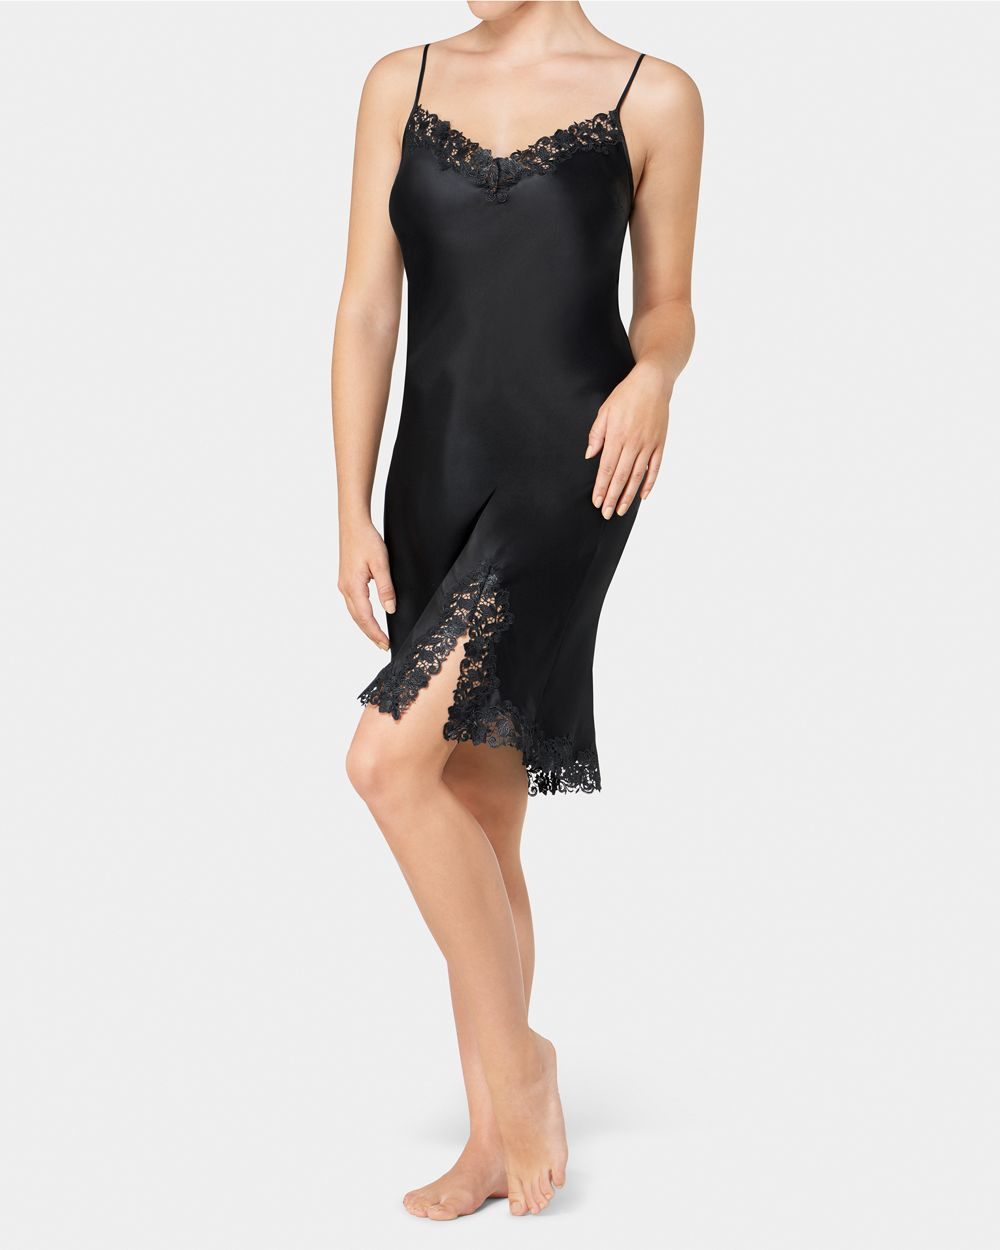 Dahlia Florale Night Dress by Triumph